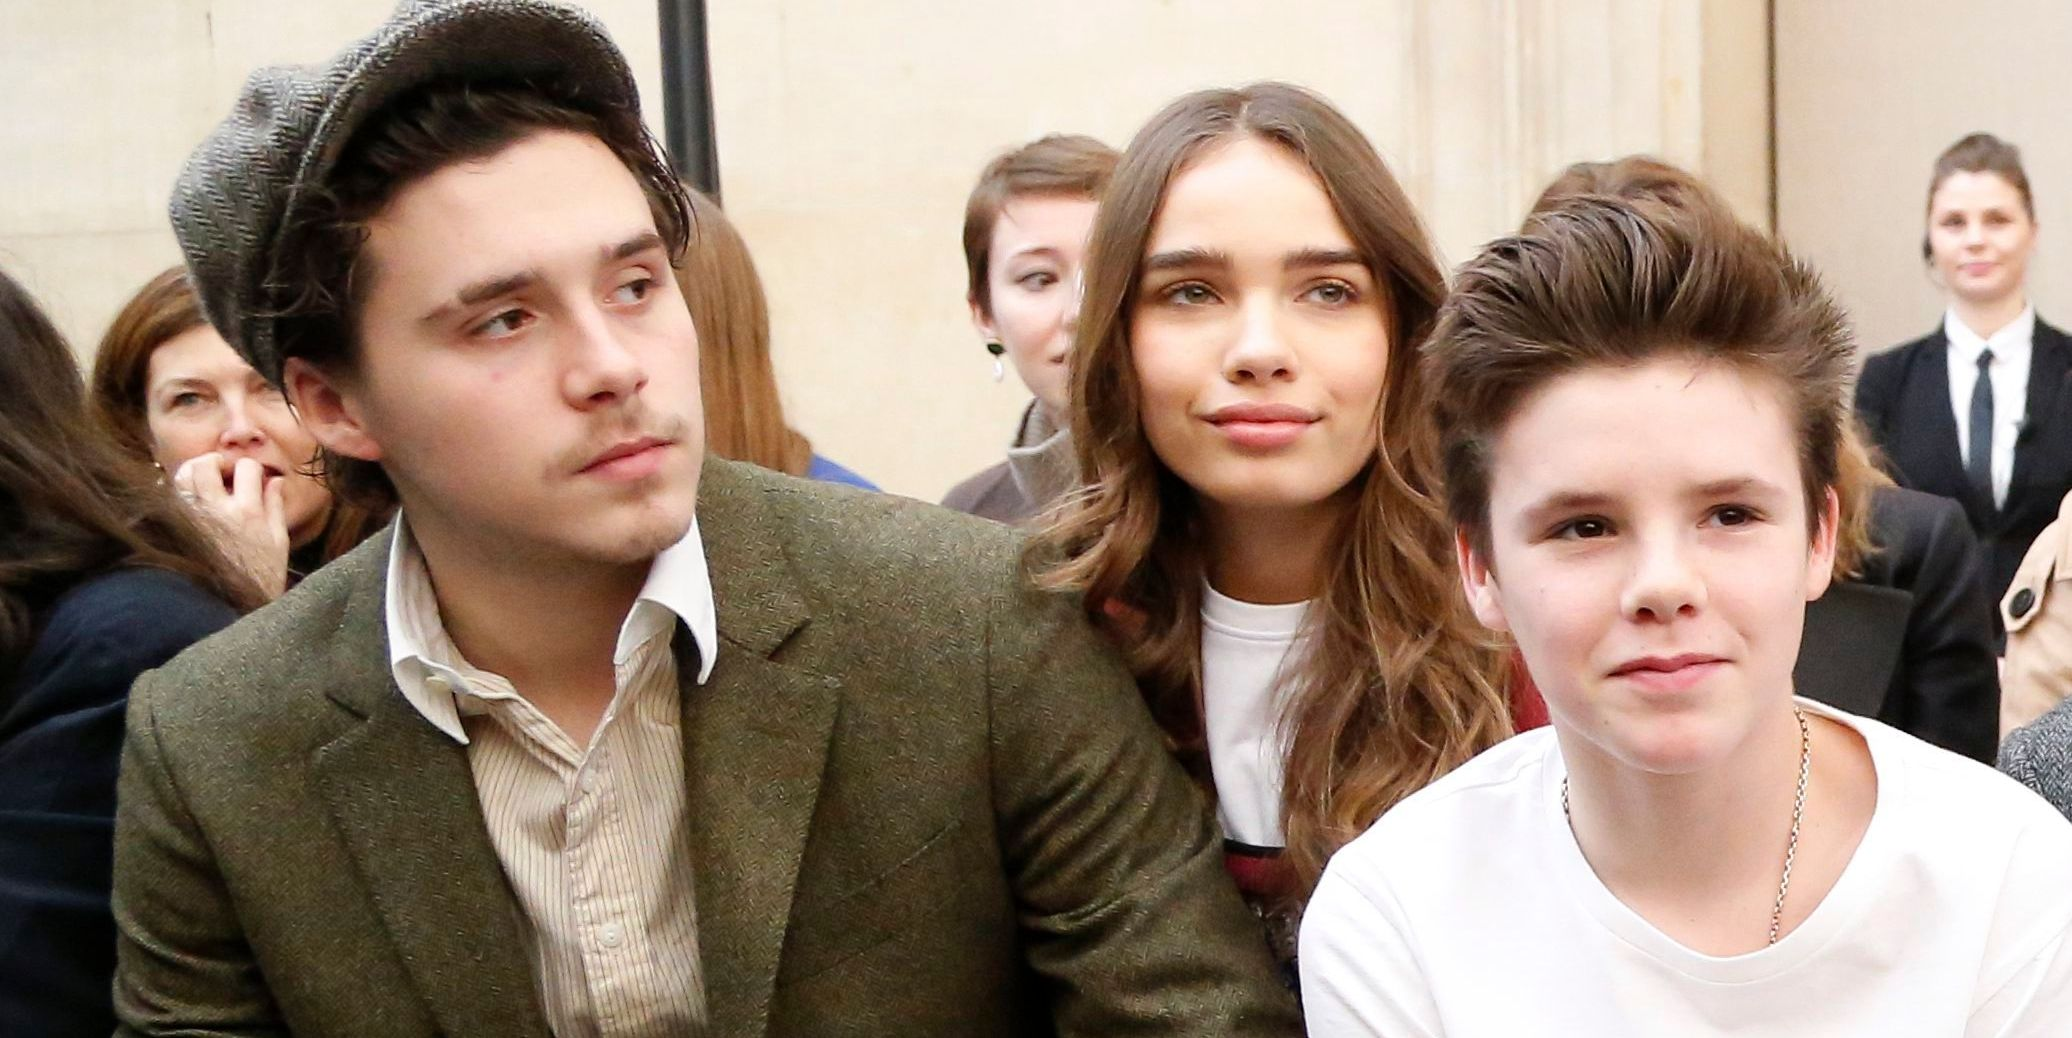 Hana Cross sits front with the Beckhams At London Fashion Week to watch Victoria Beckham's AW19 show